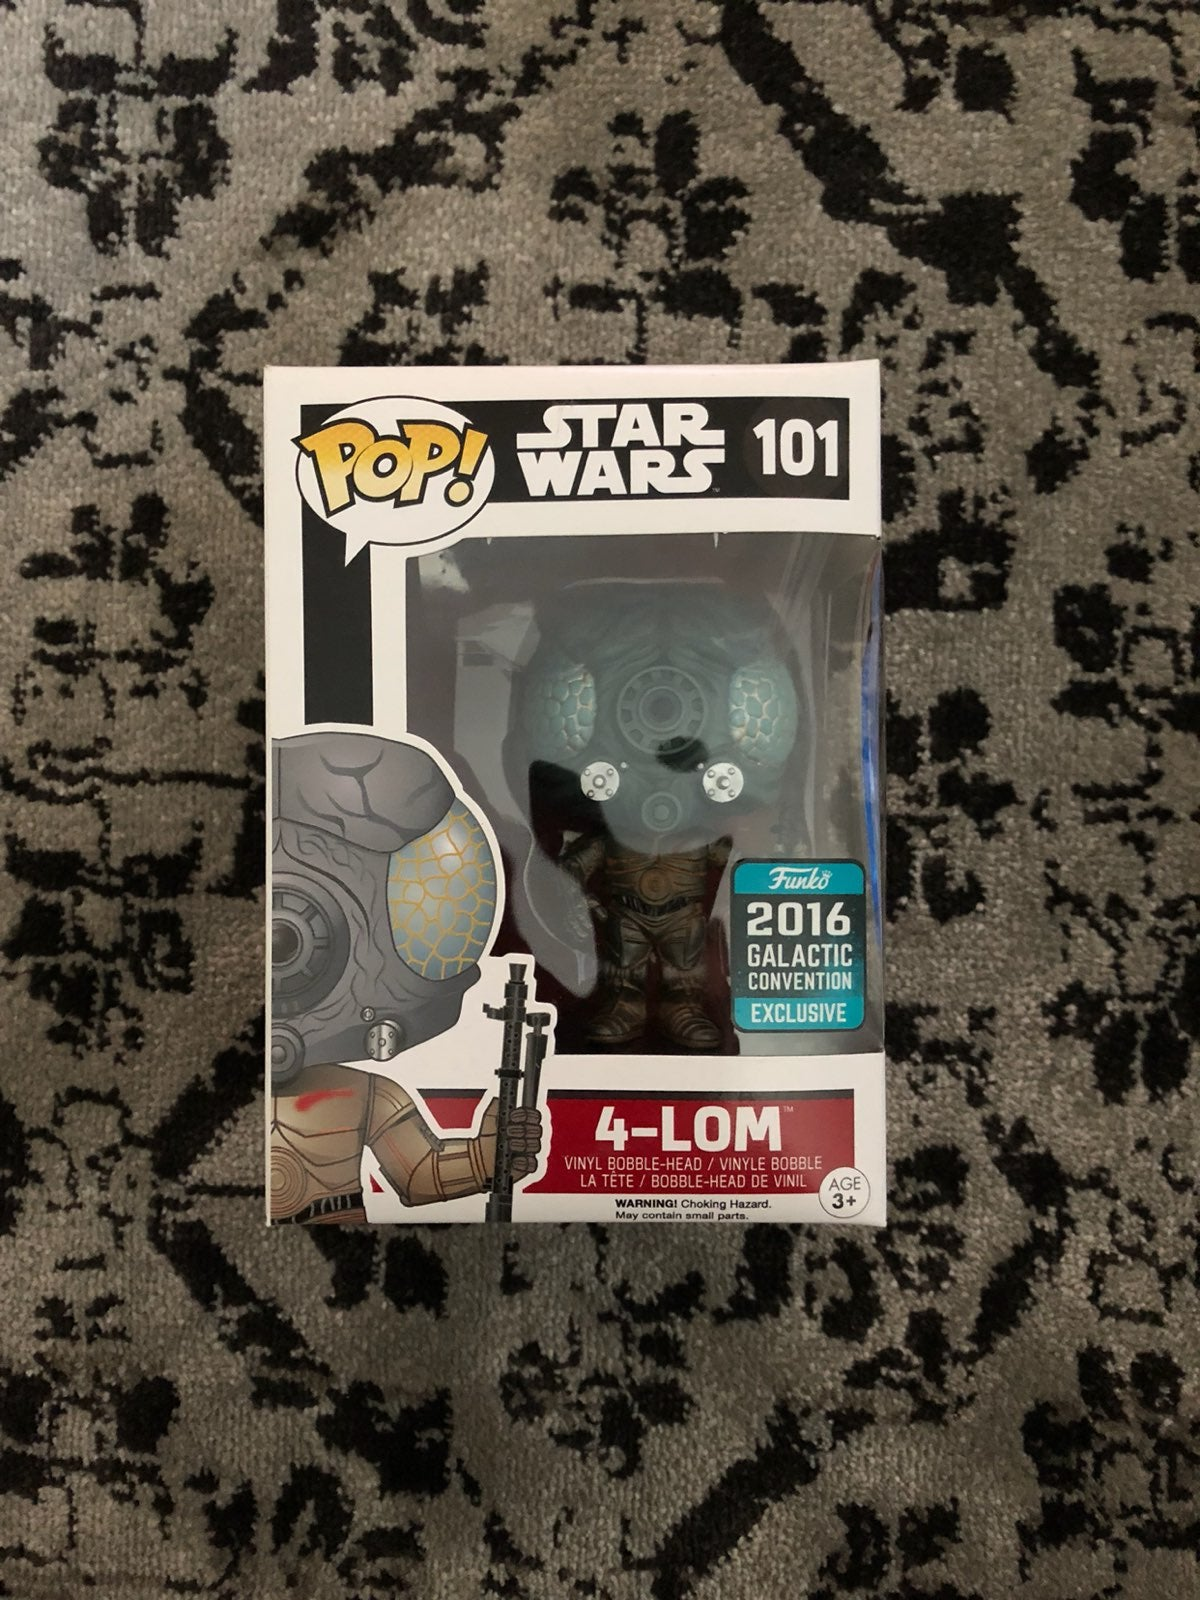 4-LOM 2016 Galactic Convention Pop